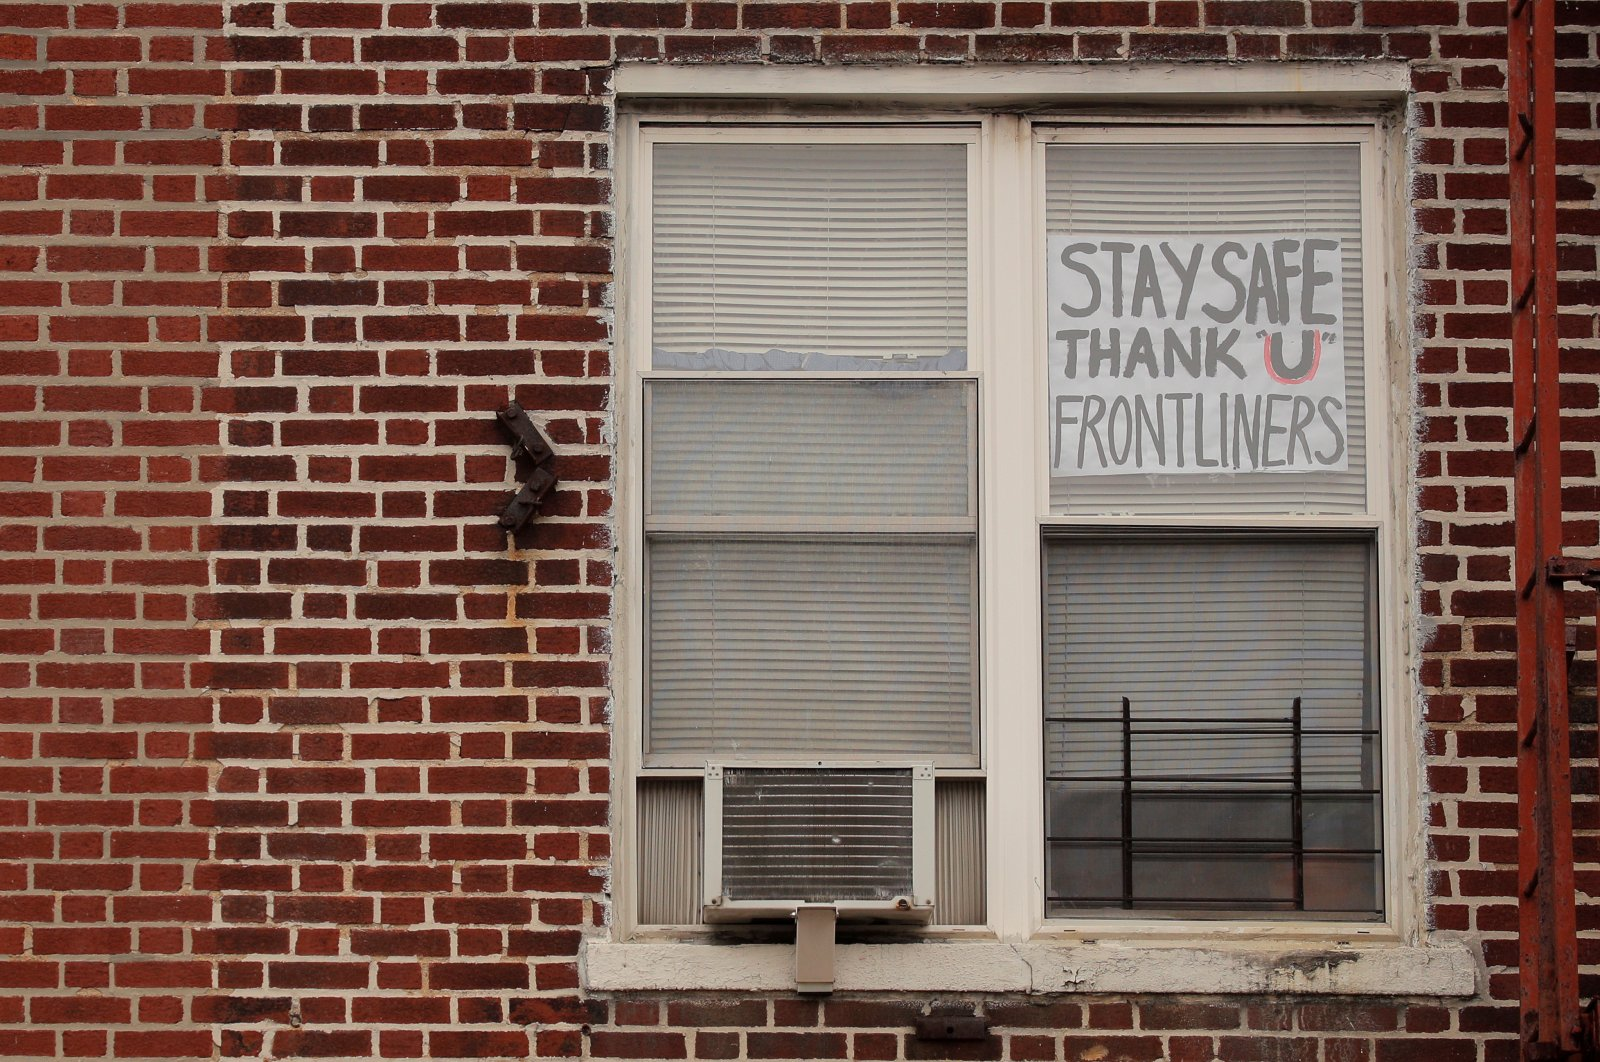 A sign thanking frontline workers is seen on an apartment window in the Brooklyn borough of New York City, U.S., Wednesday, April 8, 2020. (REUTERS Photo)